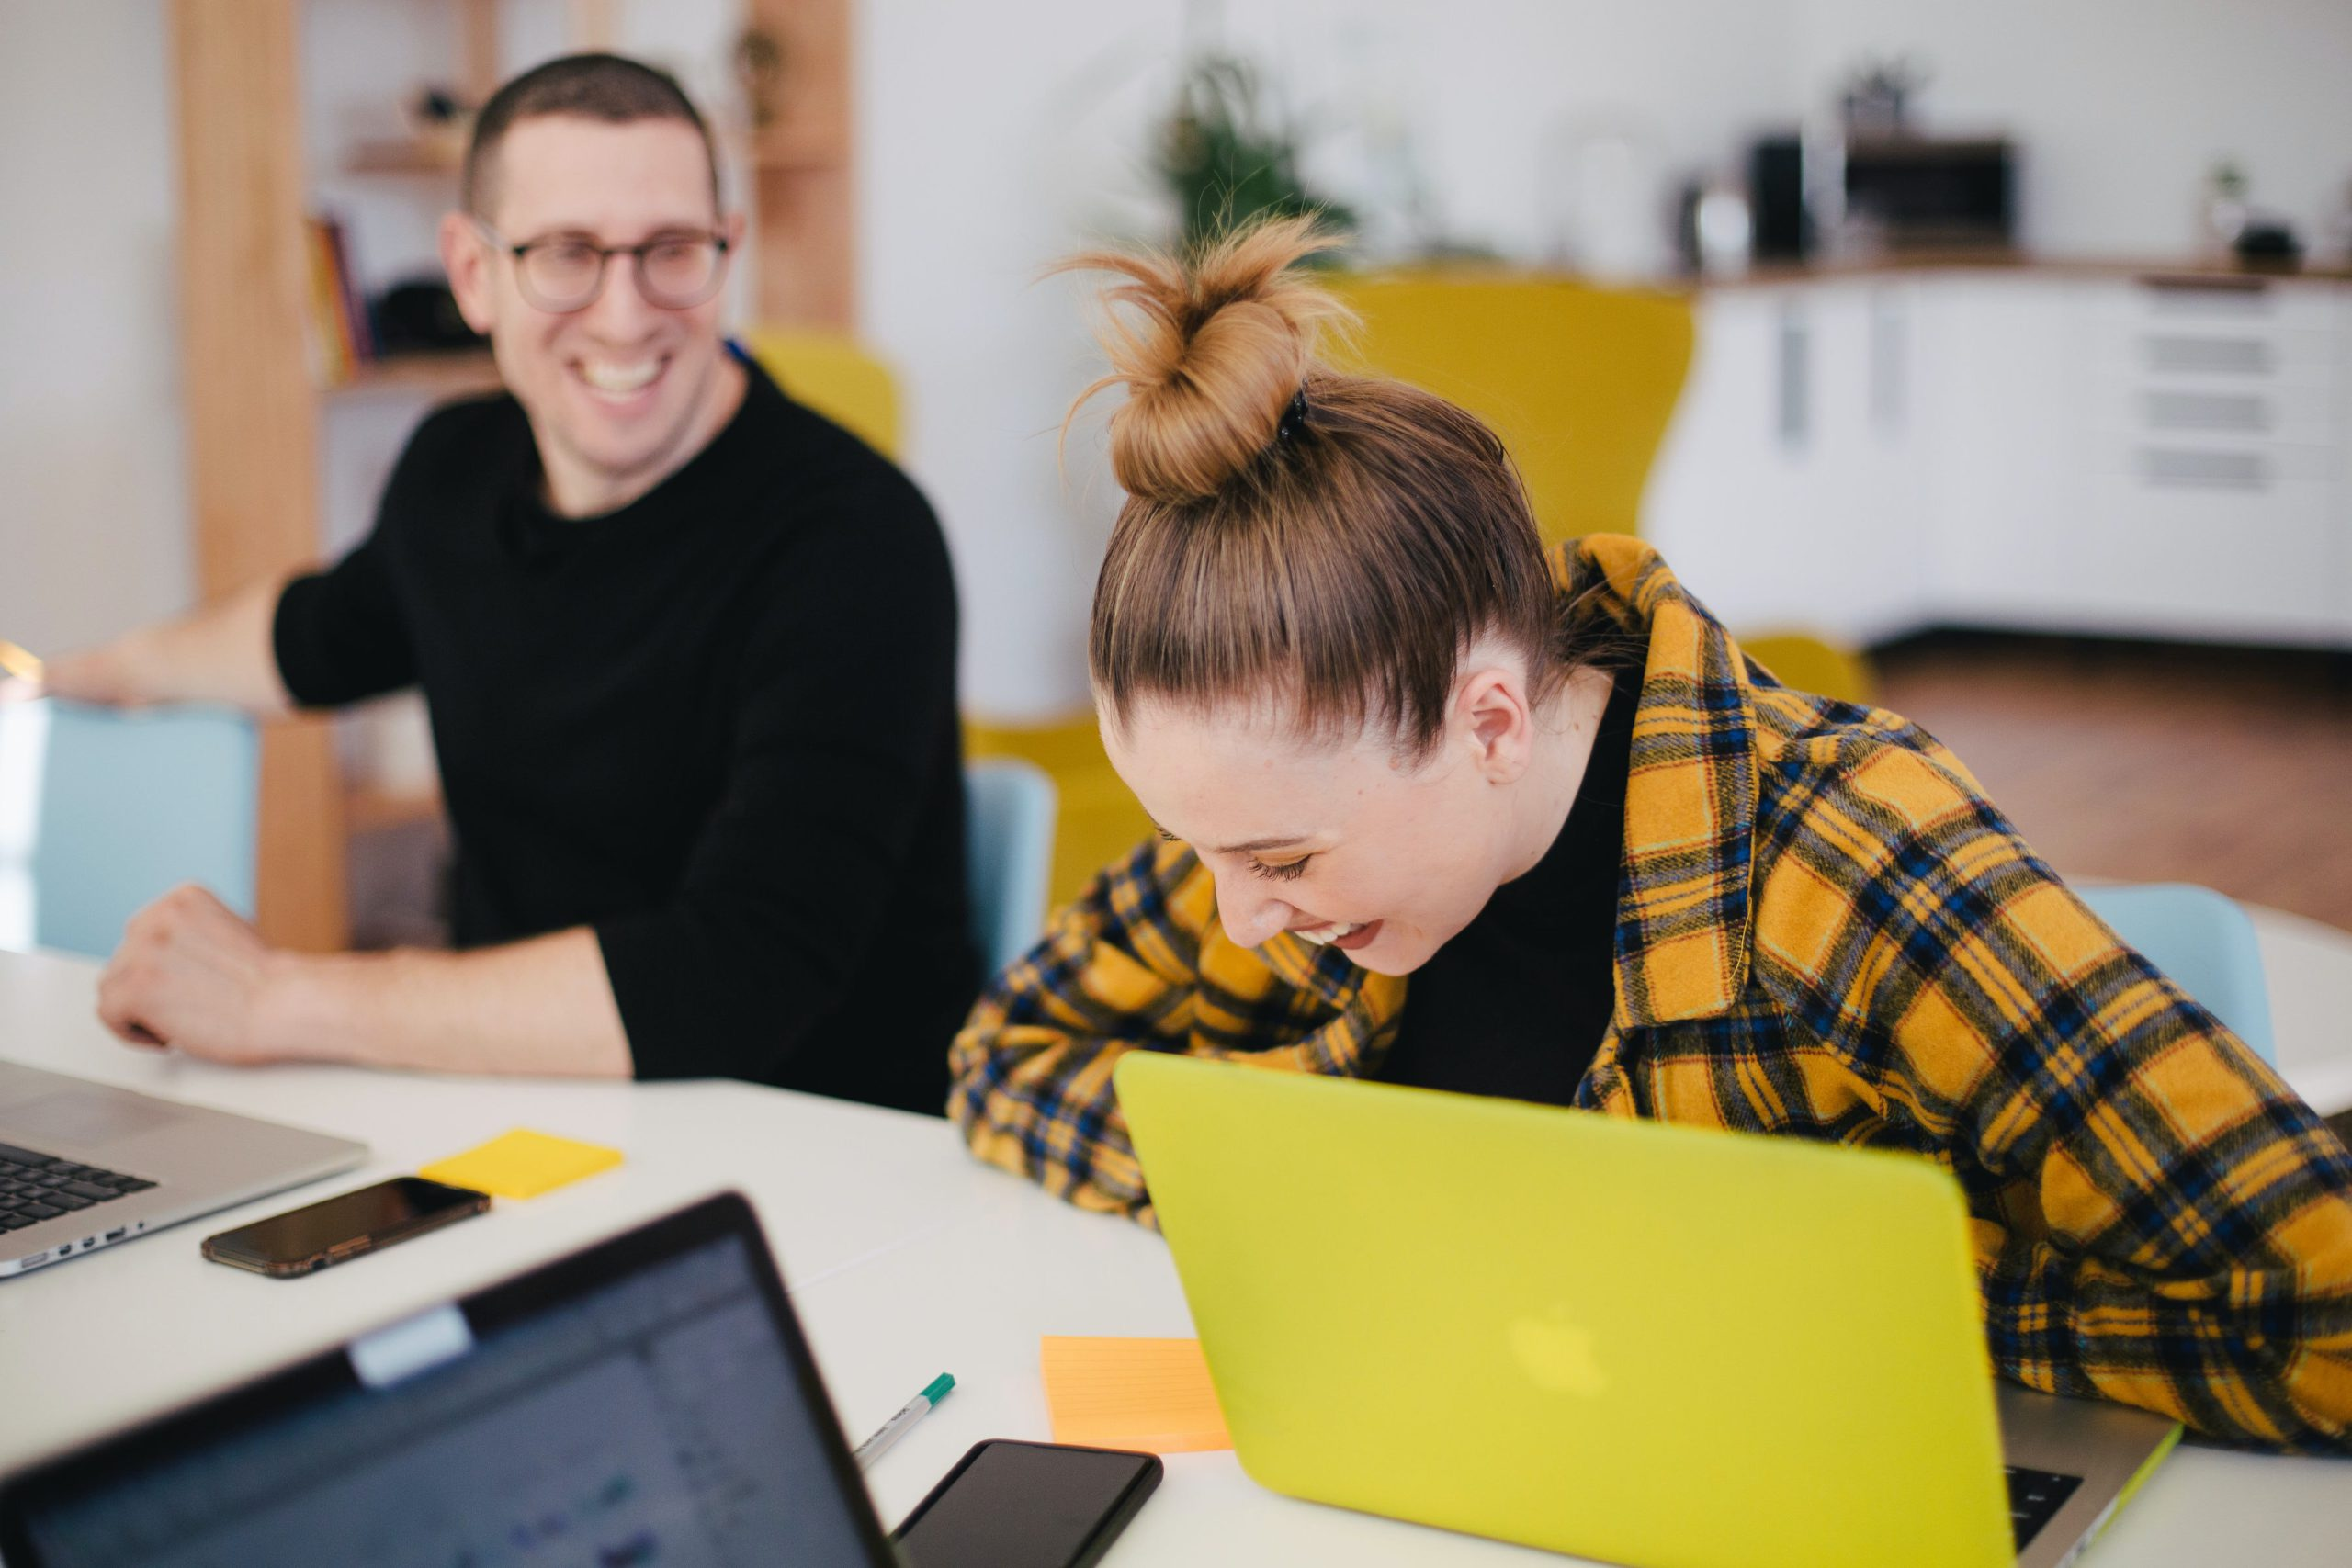 5 Ways To Keep Your Team Happy